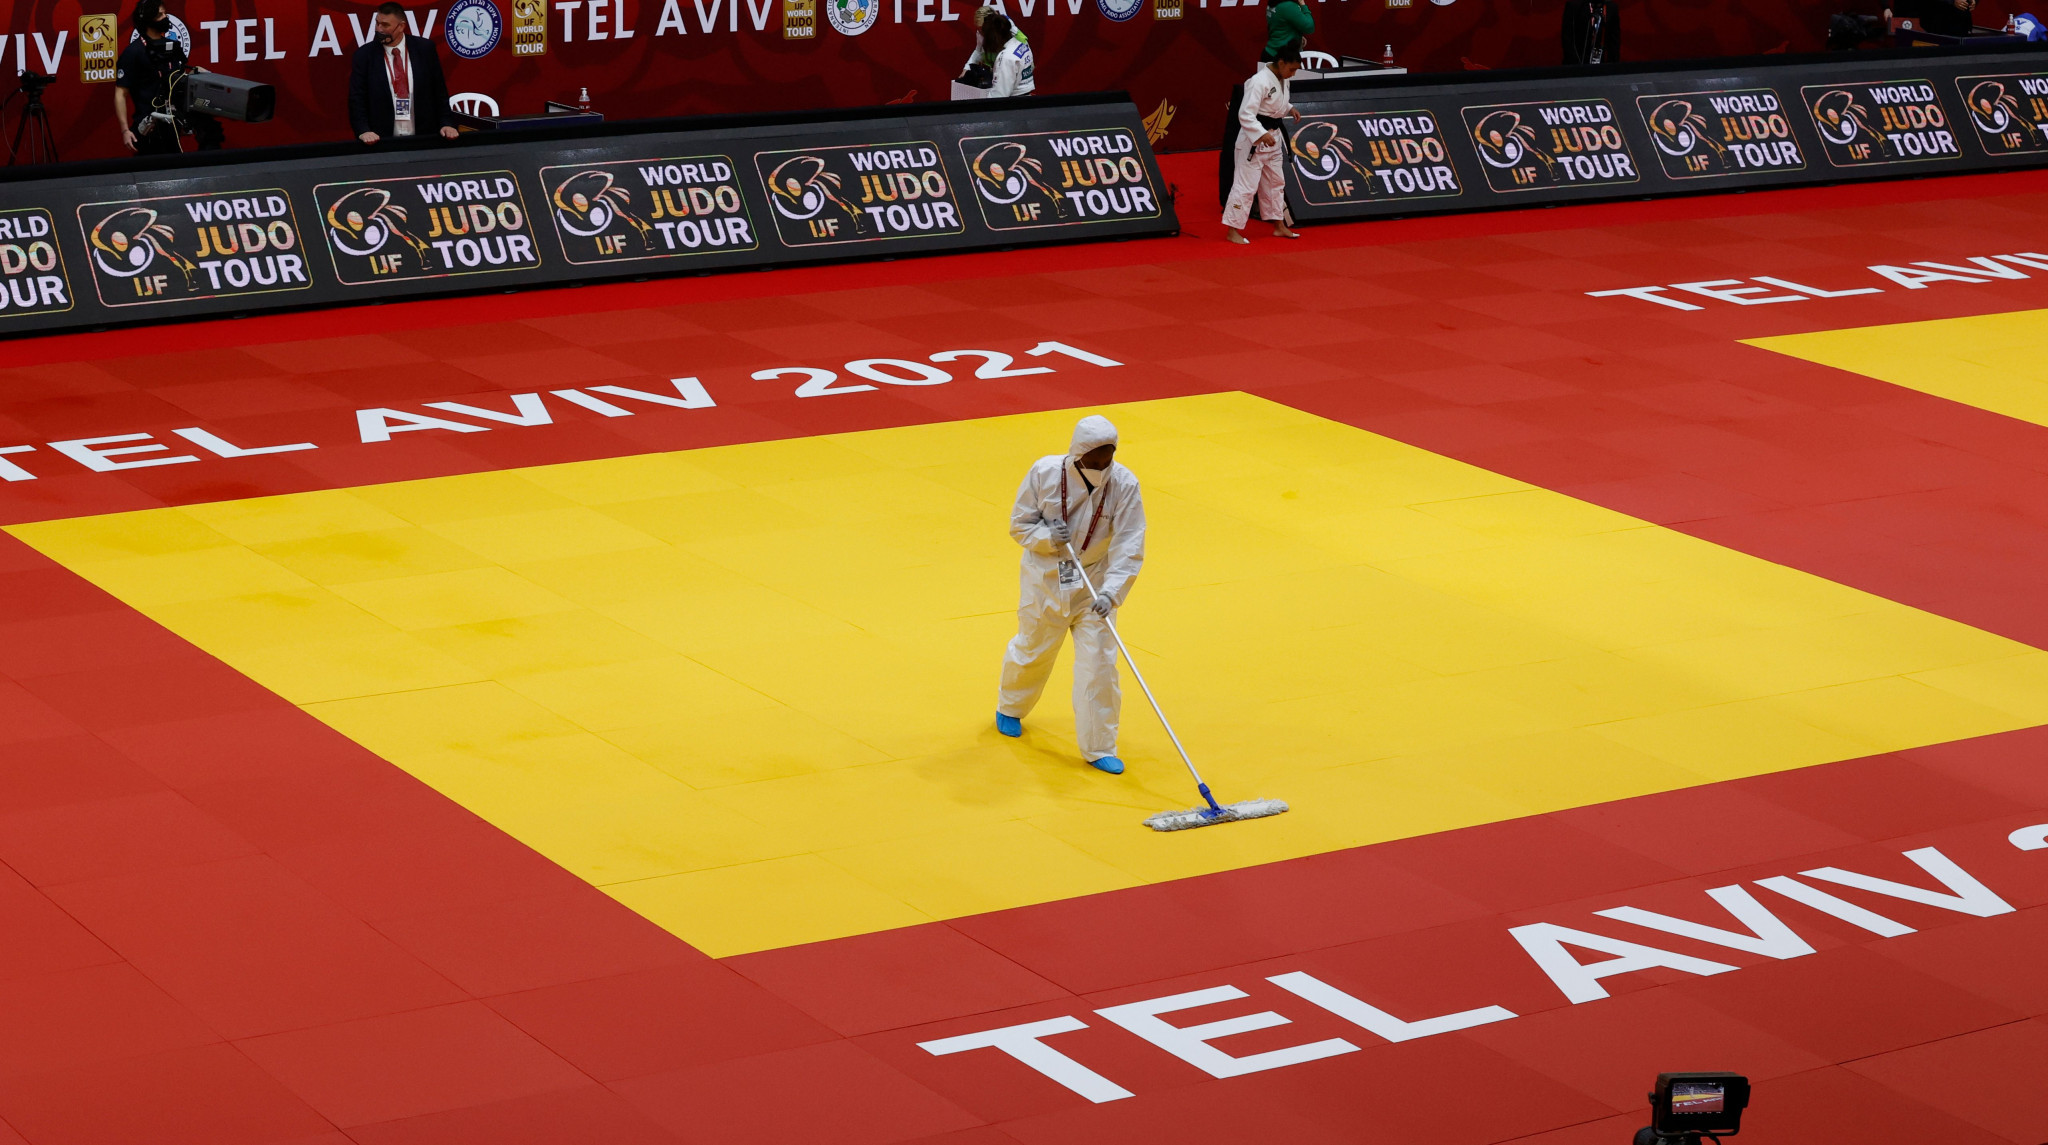 Besides tatami mats, Materik produce boxing rings, mixed martial arts octagons, wrestling carpets and other combat sport equpiment ©Getty Images